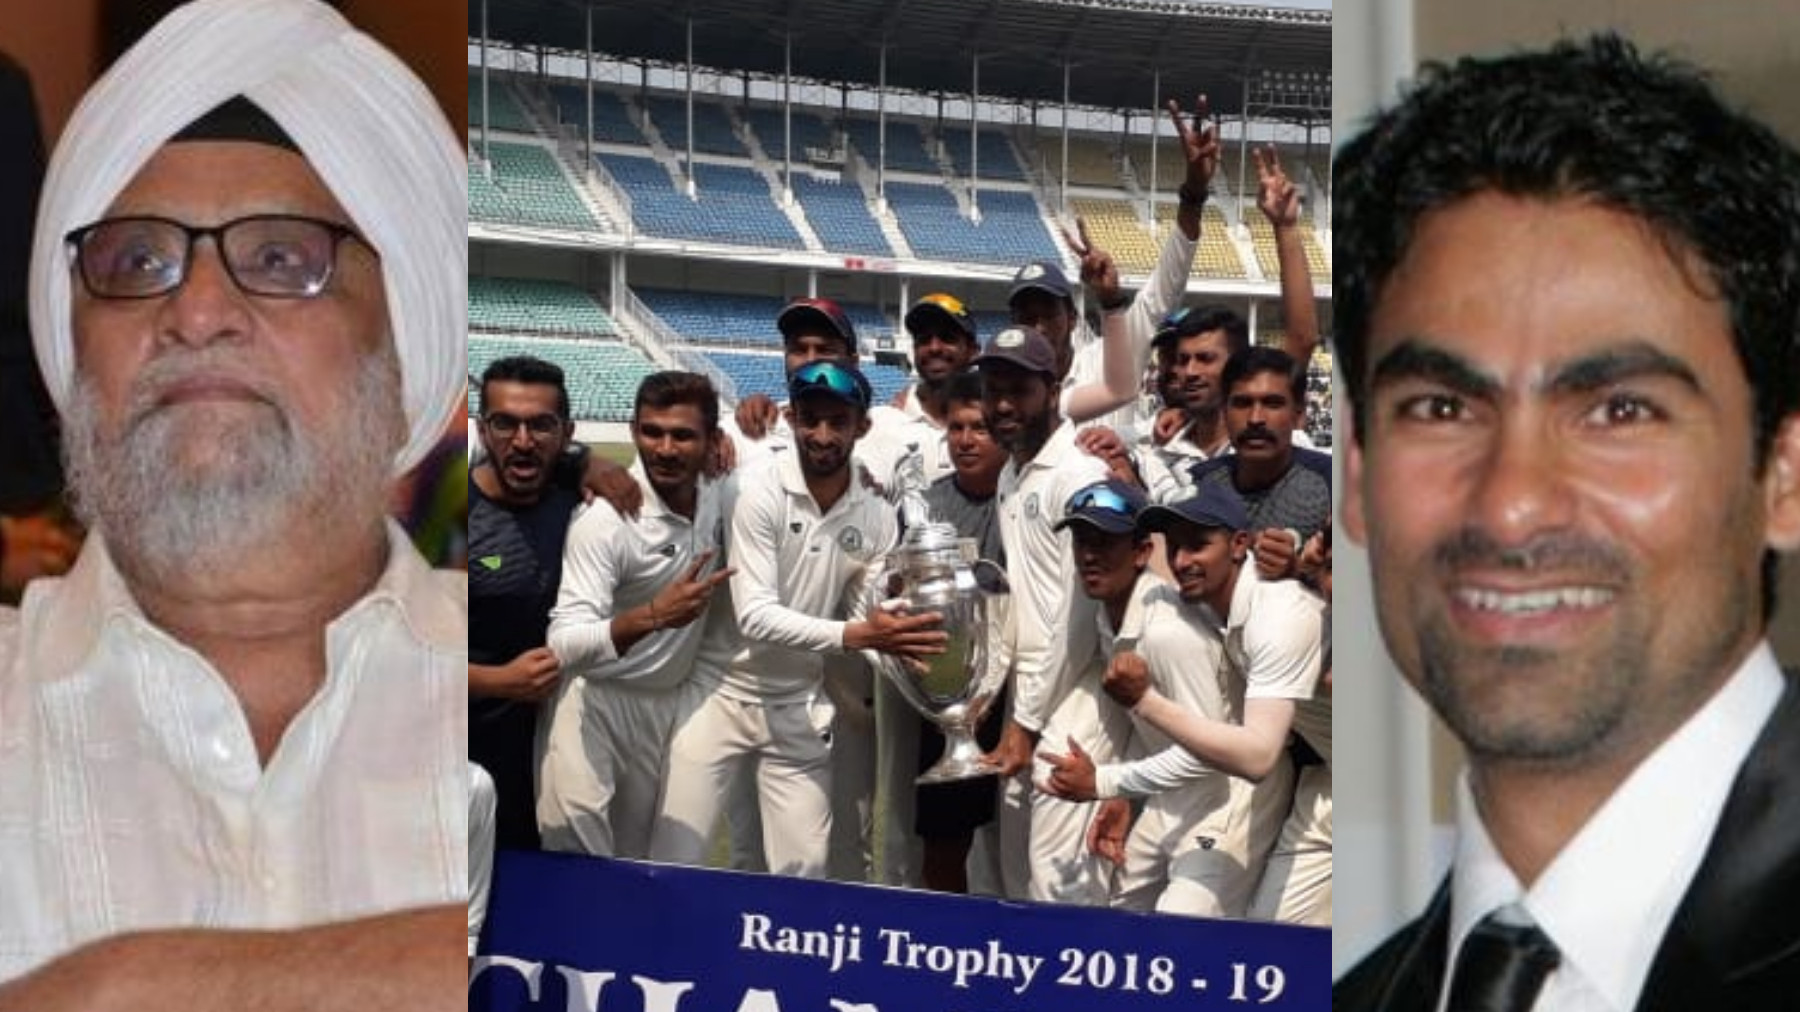 Indian Cricket fraternity congratulates Vidarbha on their second Ranji Trophy title win